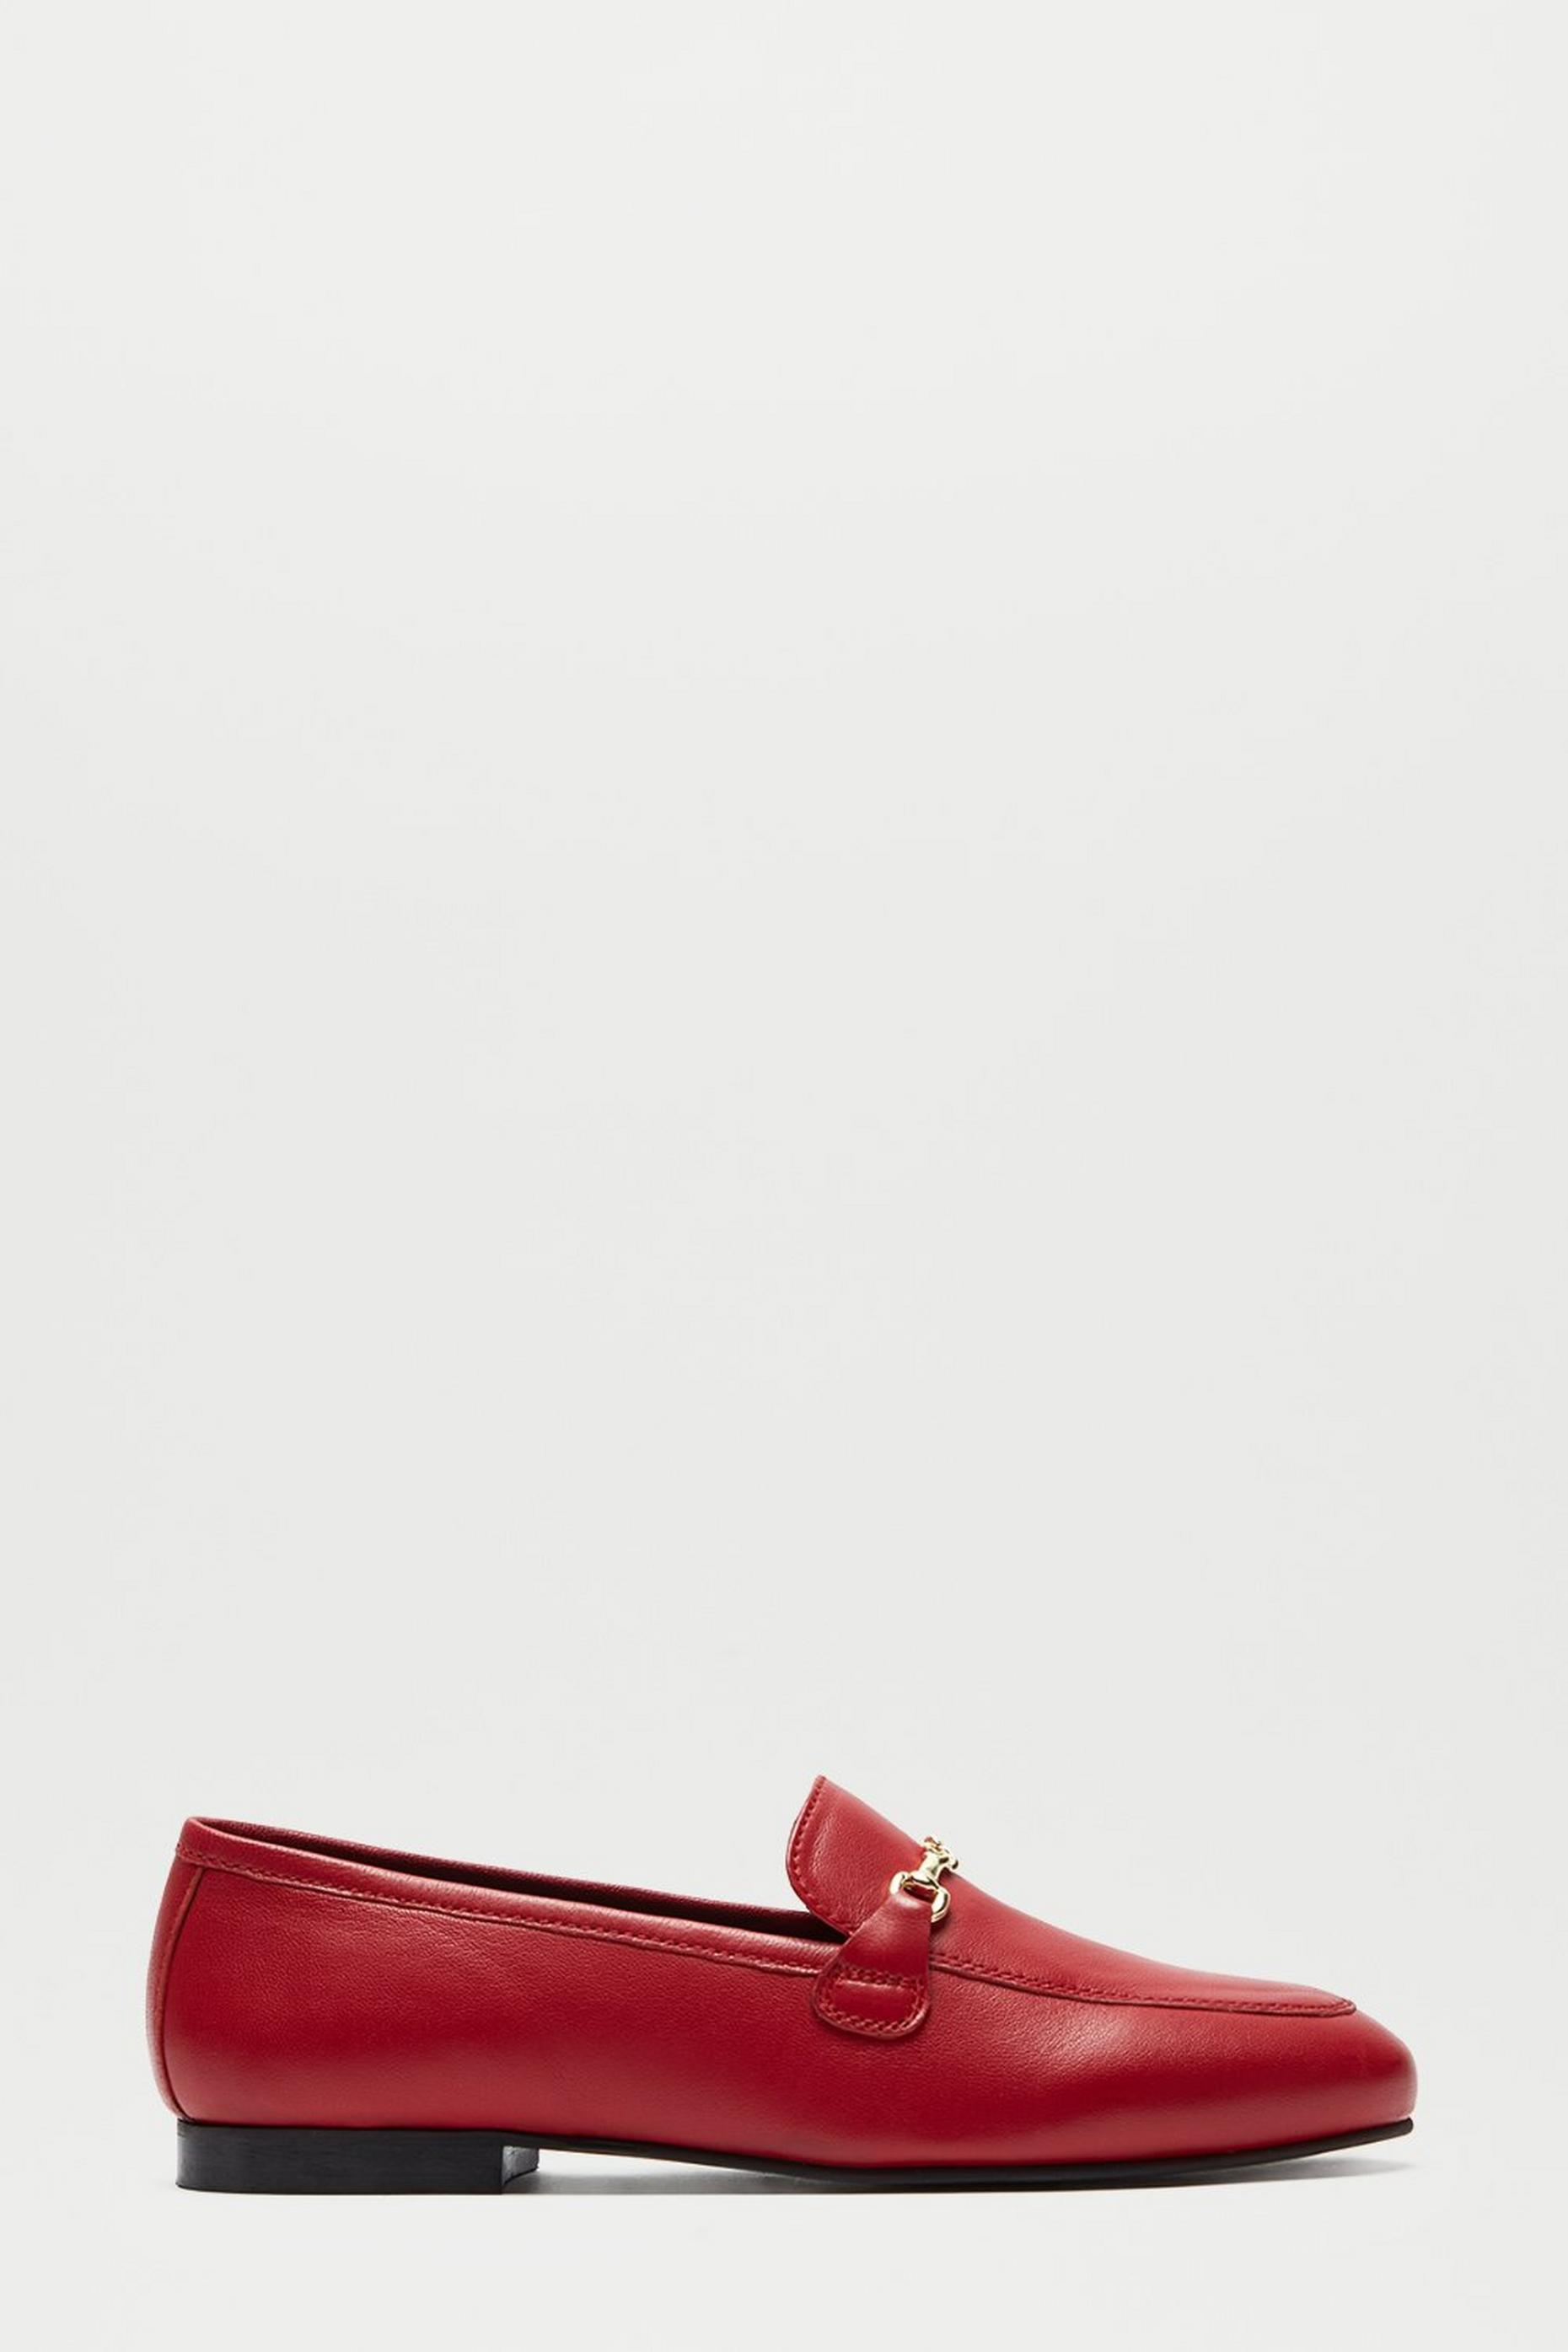 Leather Red Liza Loafer